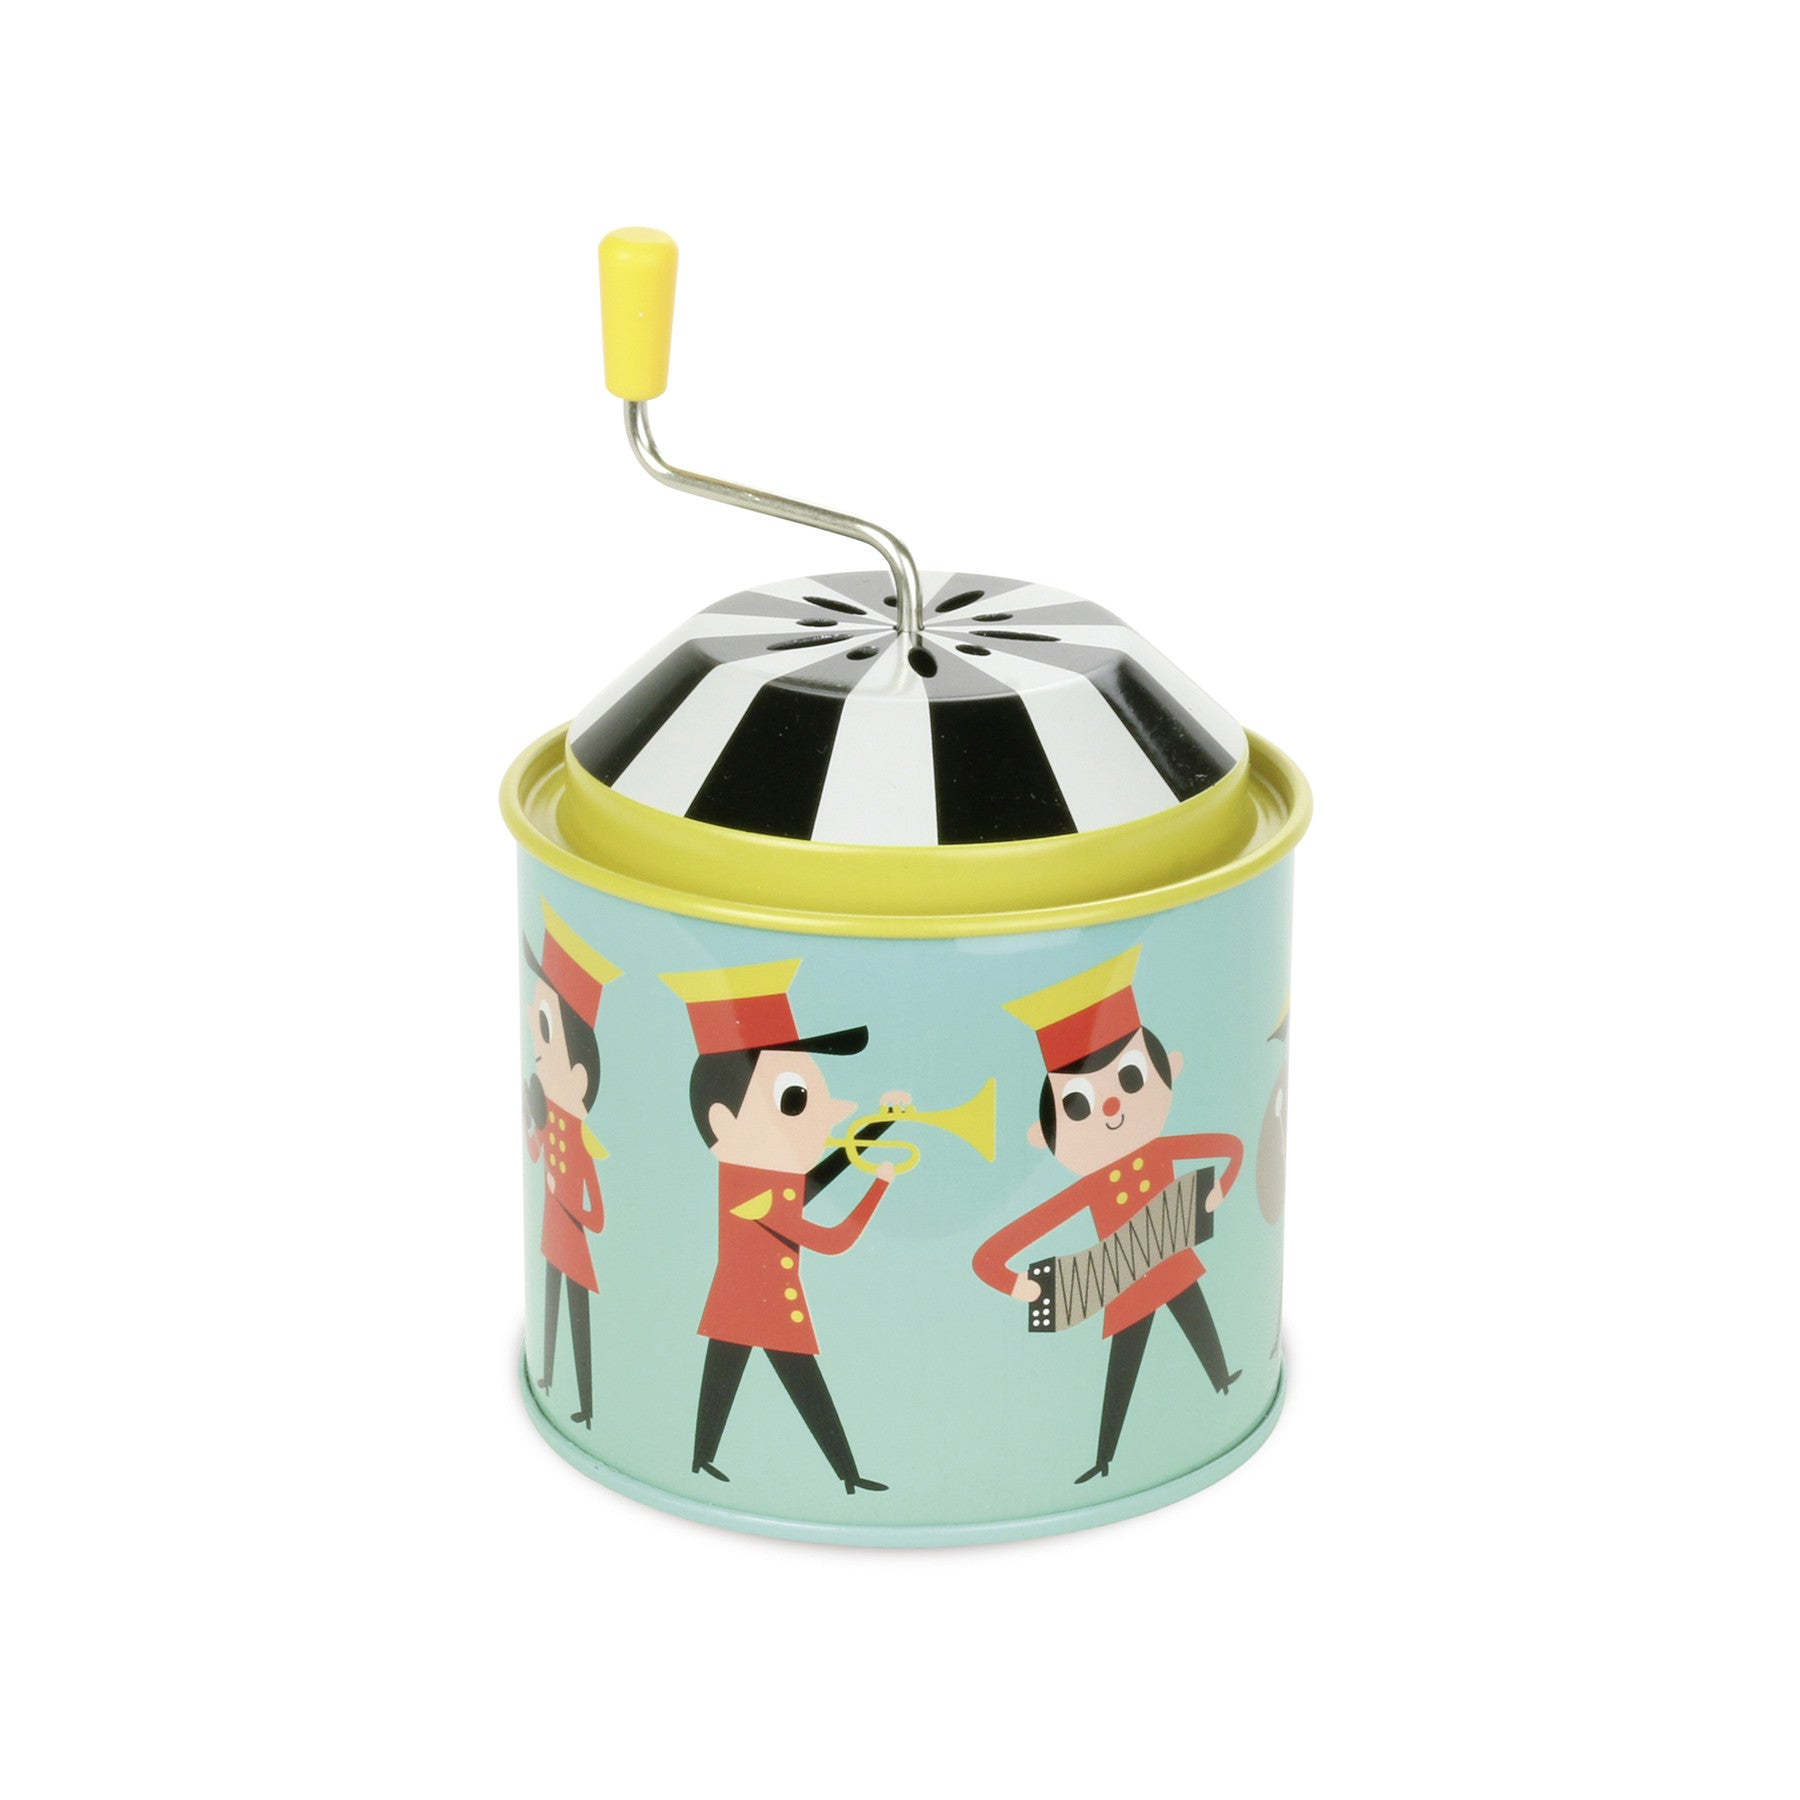 Ingela Arrhenius Metal Musical Box - marching band by Vilac - Little Citizens Boutique